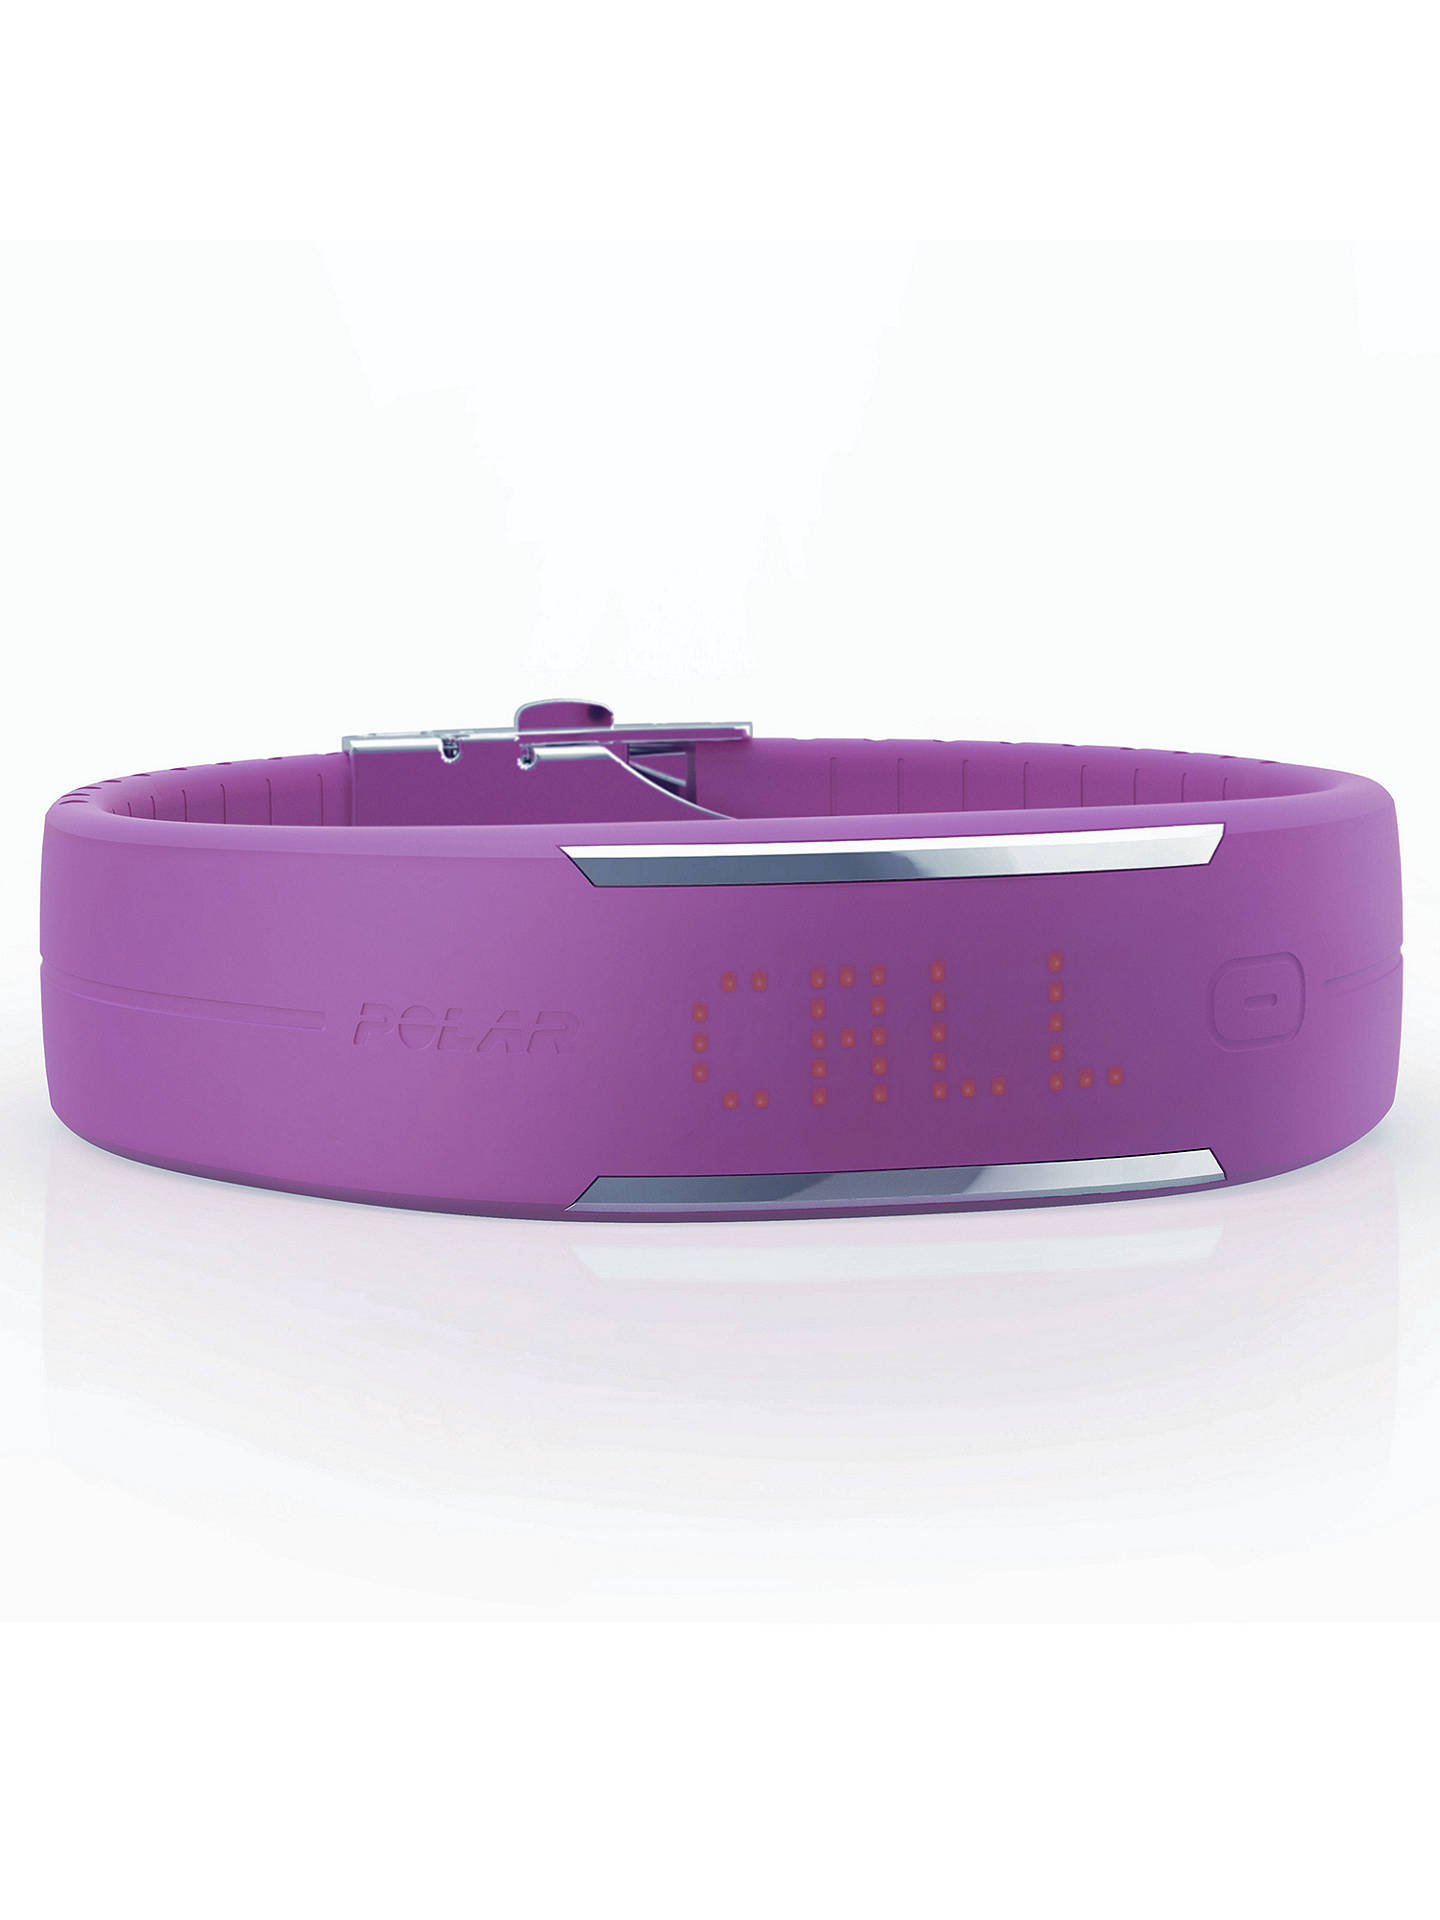 Buy Polar Loop Activity Tracker 2, Sorbet Pink Online at johnlewis.com